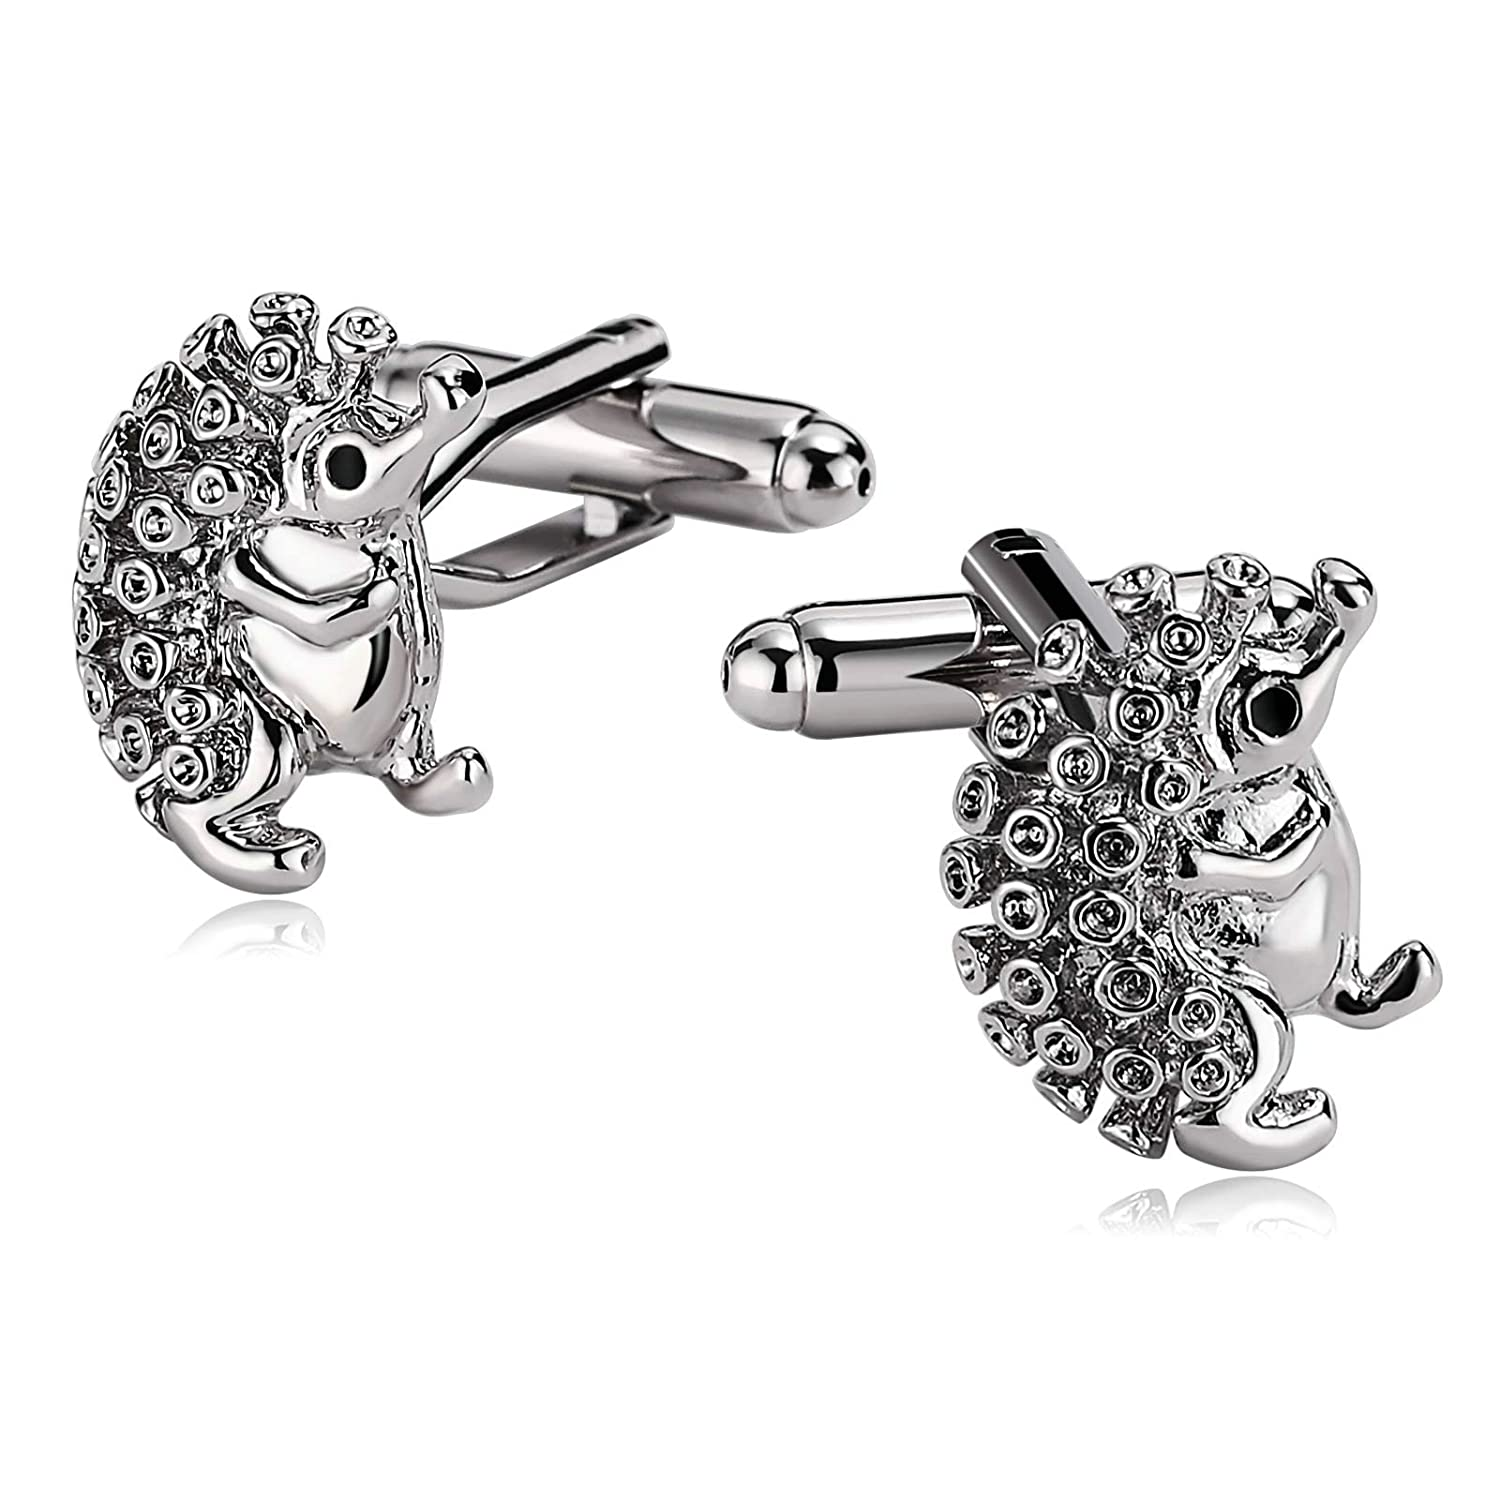 Bishilin Jewellery Cuff Links Stainless Steel Cuff Links for Mens Animal Hedgehog Silver Shirt Tuxedo Anniversary Business